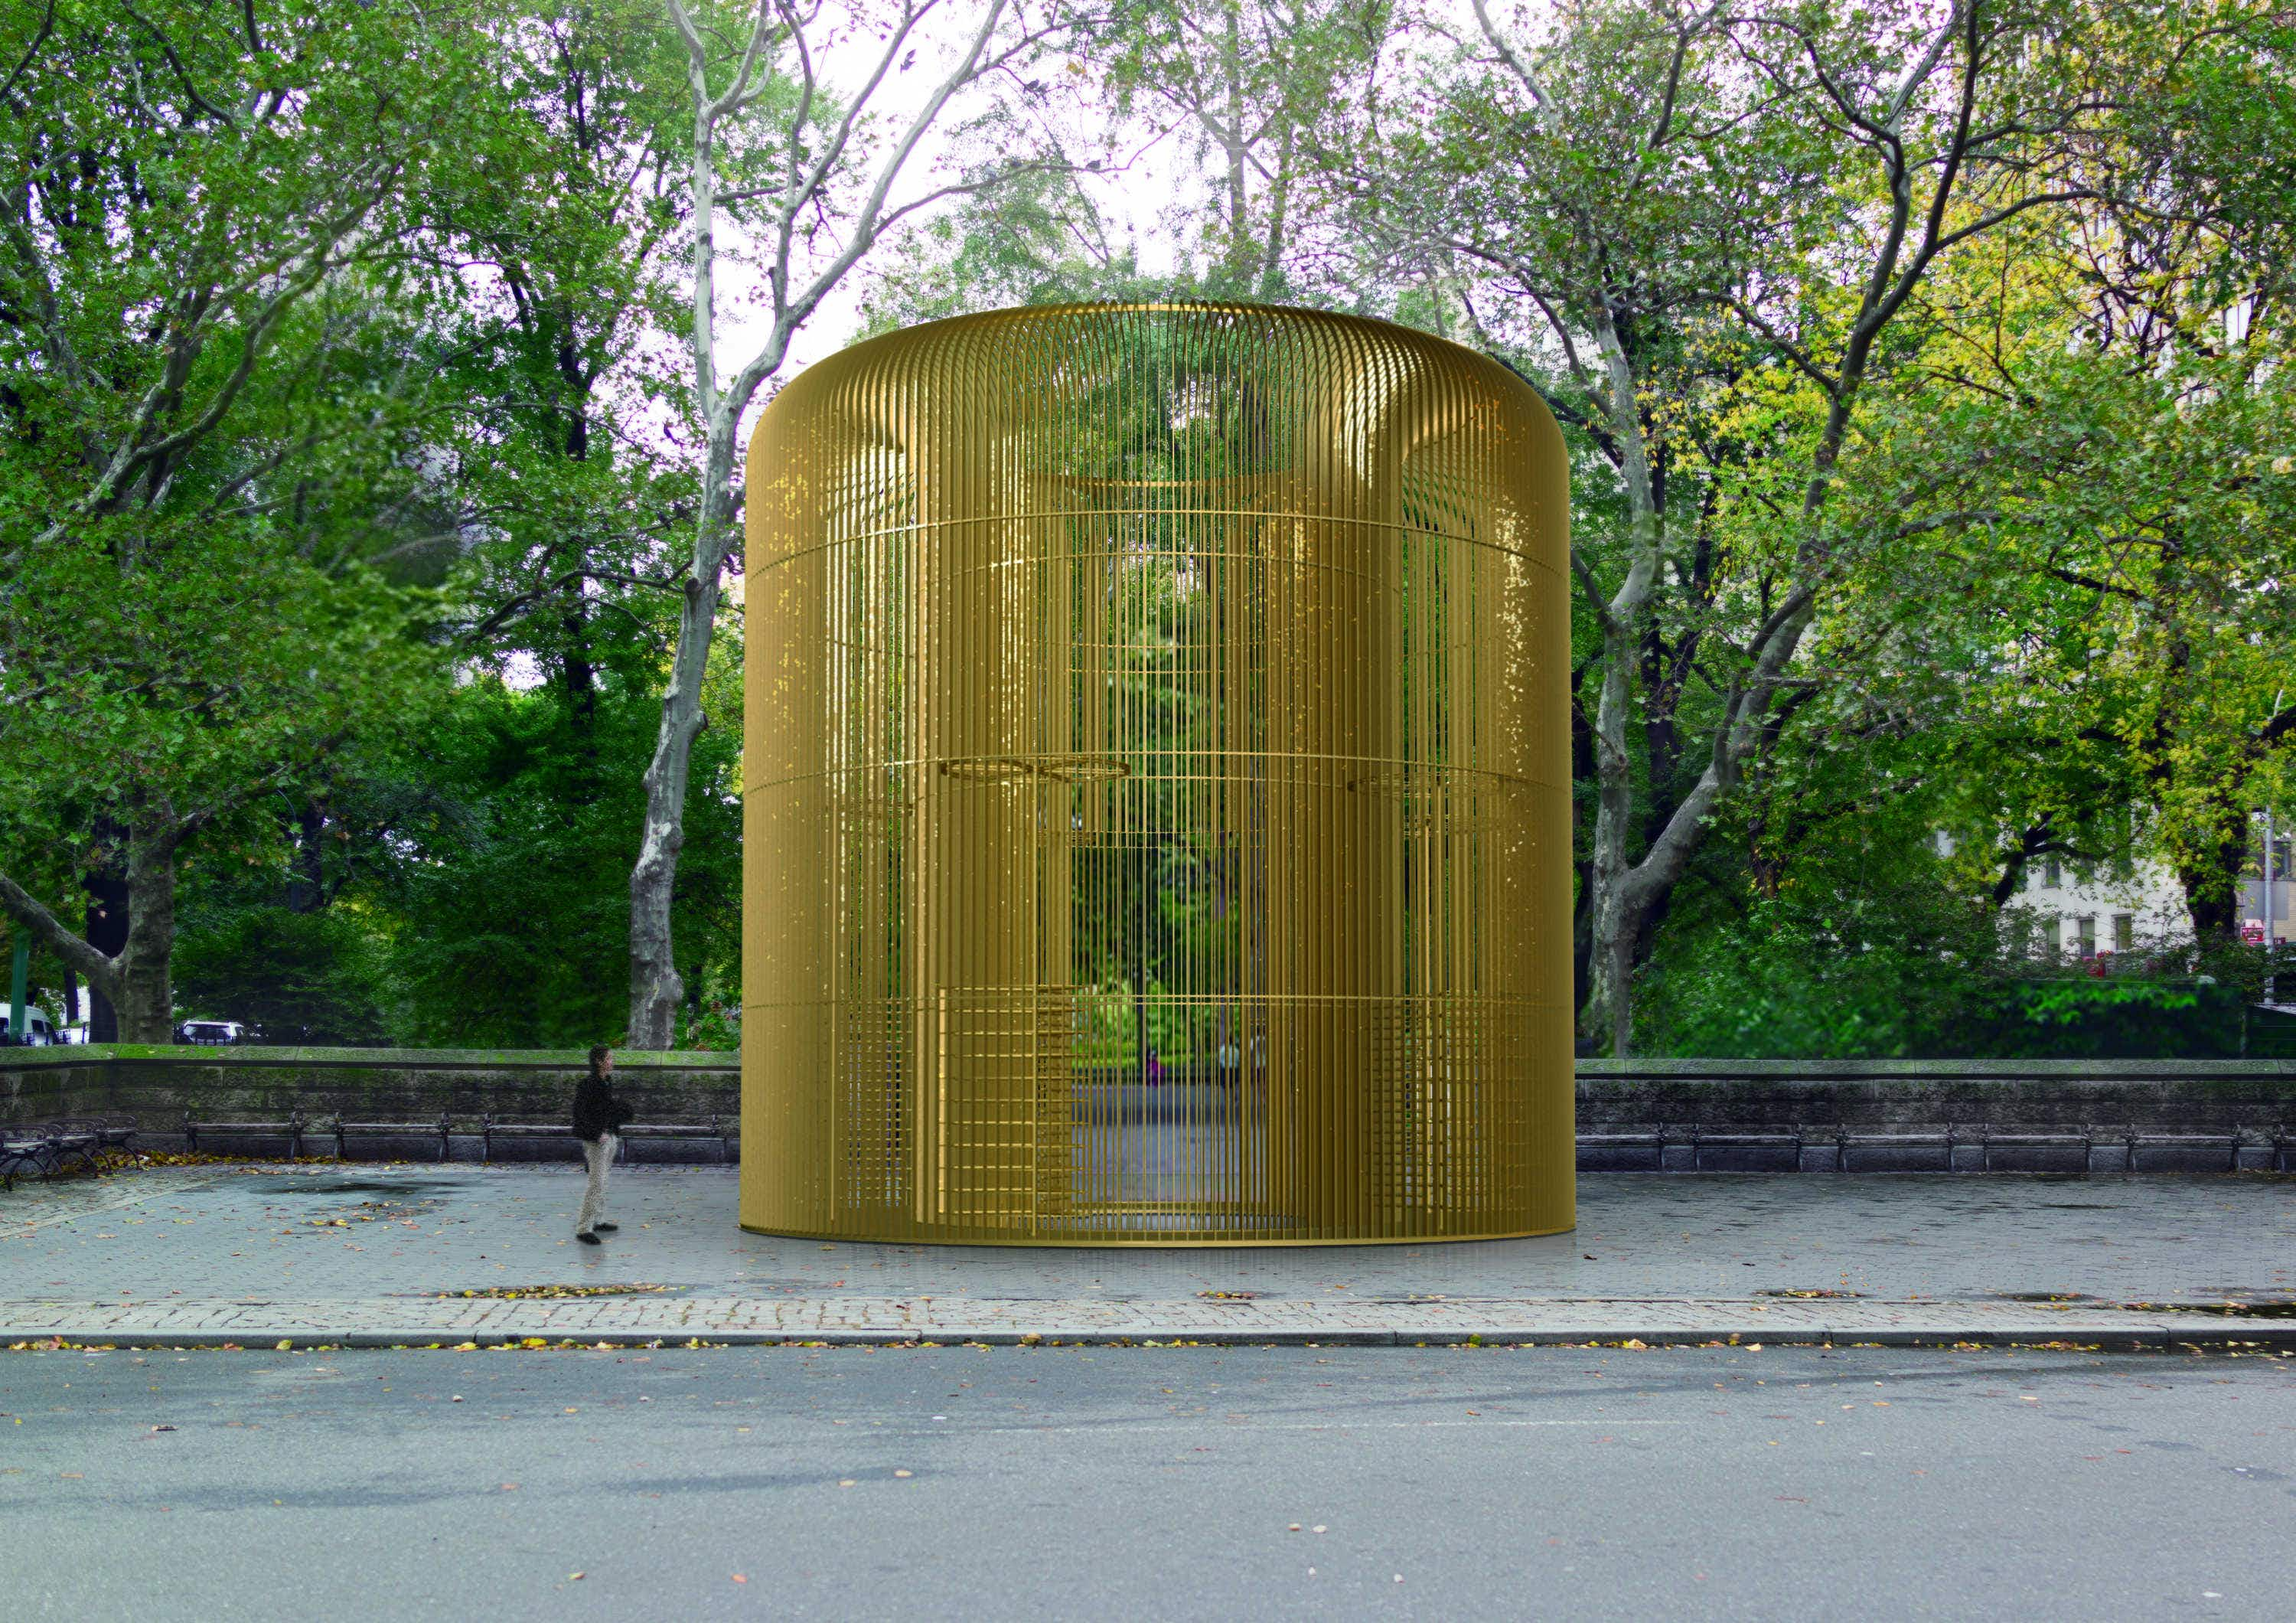 The sites for Ai Weiwei's borough-spanning New York City fence exhibition have been announced